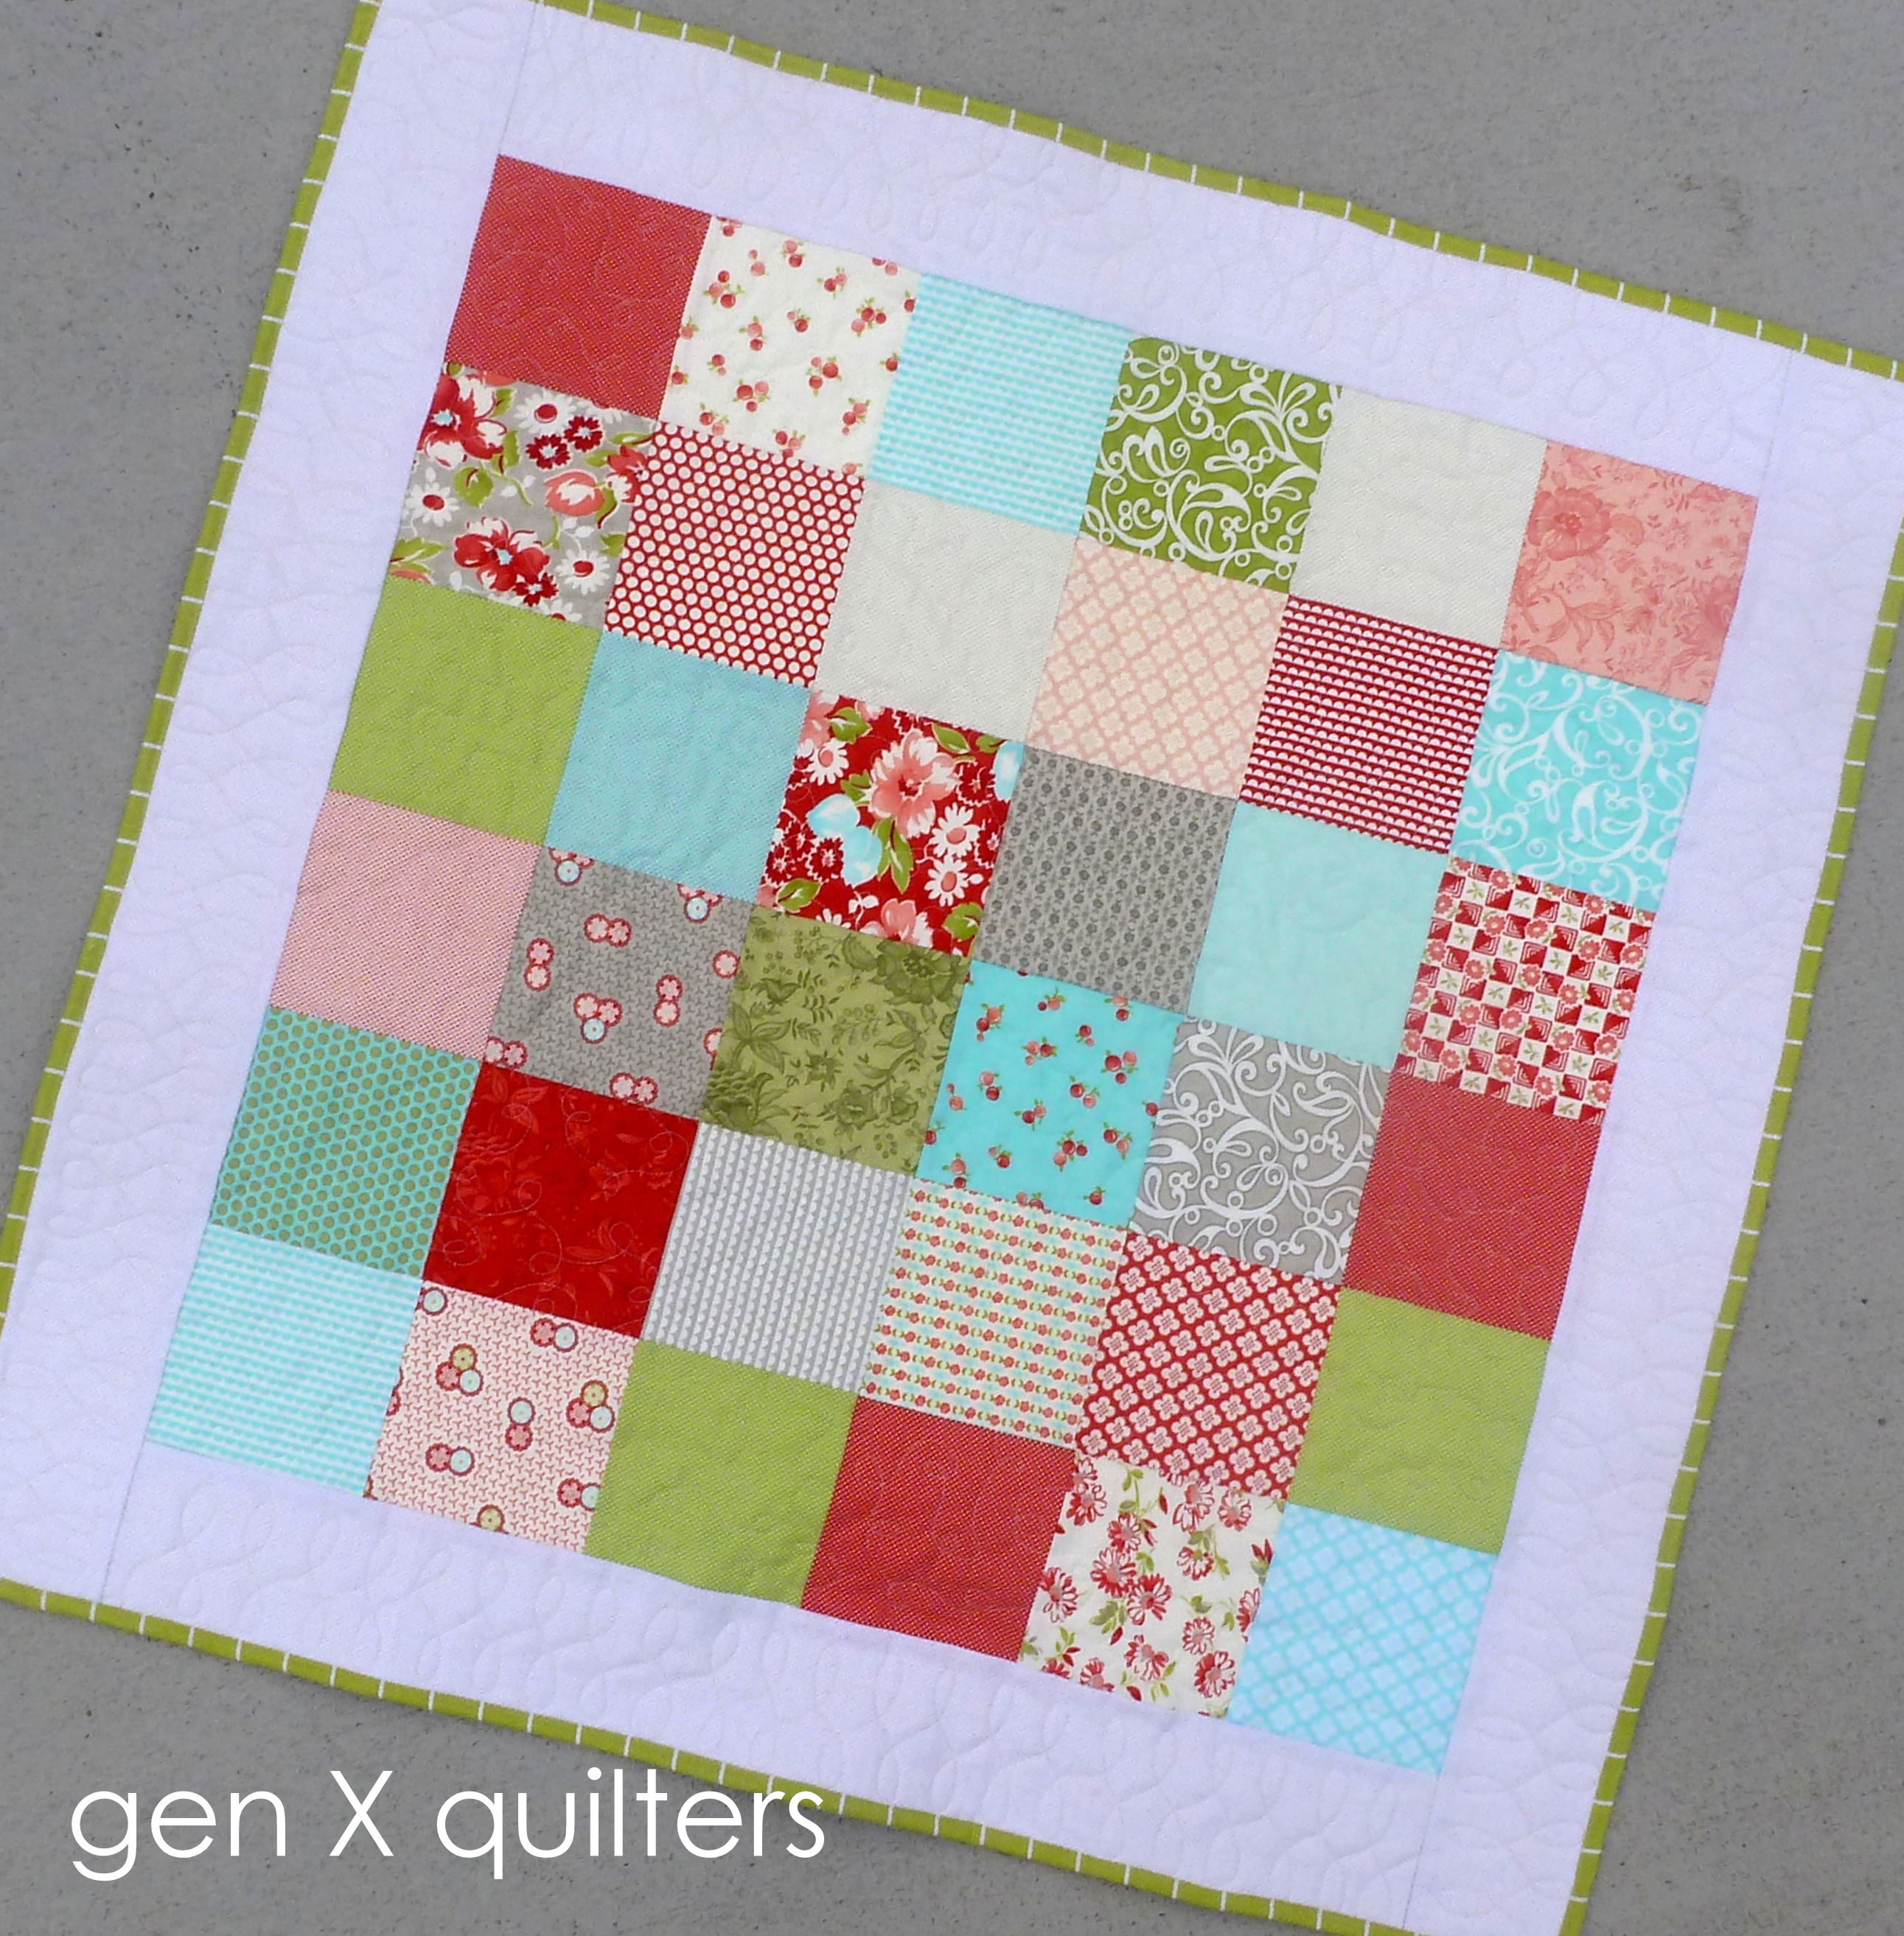 Quilting Patterns Basic : GenXQuilters: Modern Traditional Quilting, Block of the Month Sampler Quilt Patterns AnneMarie ...